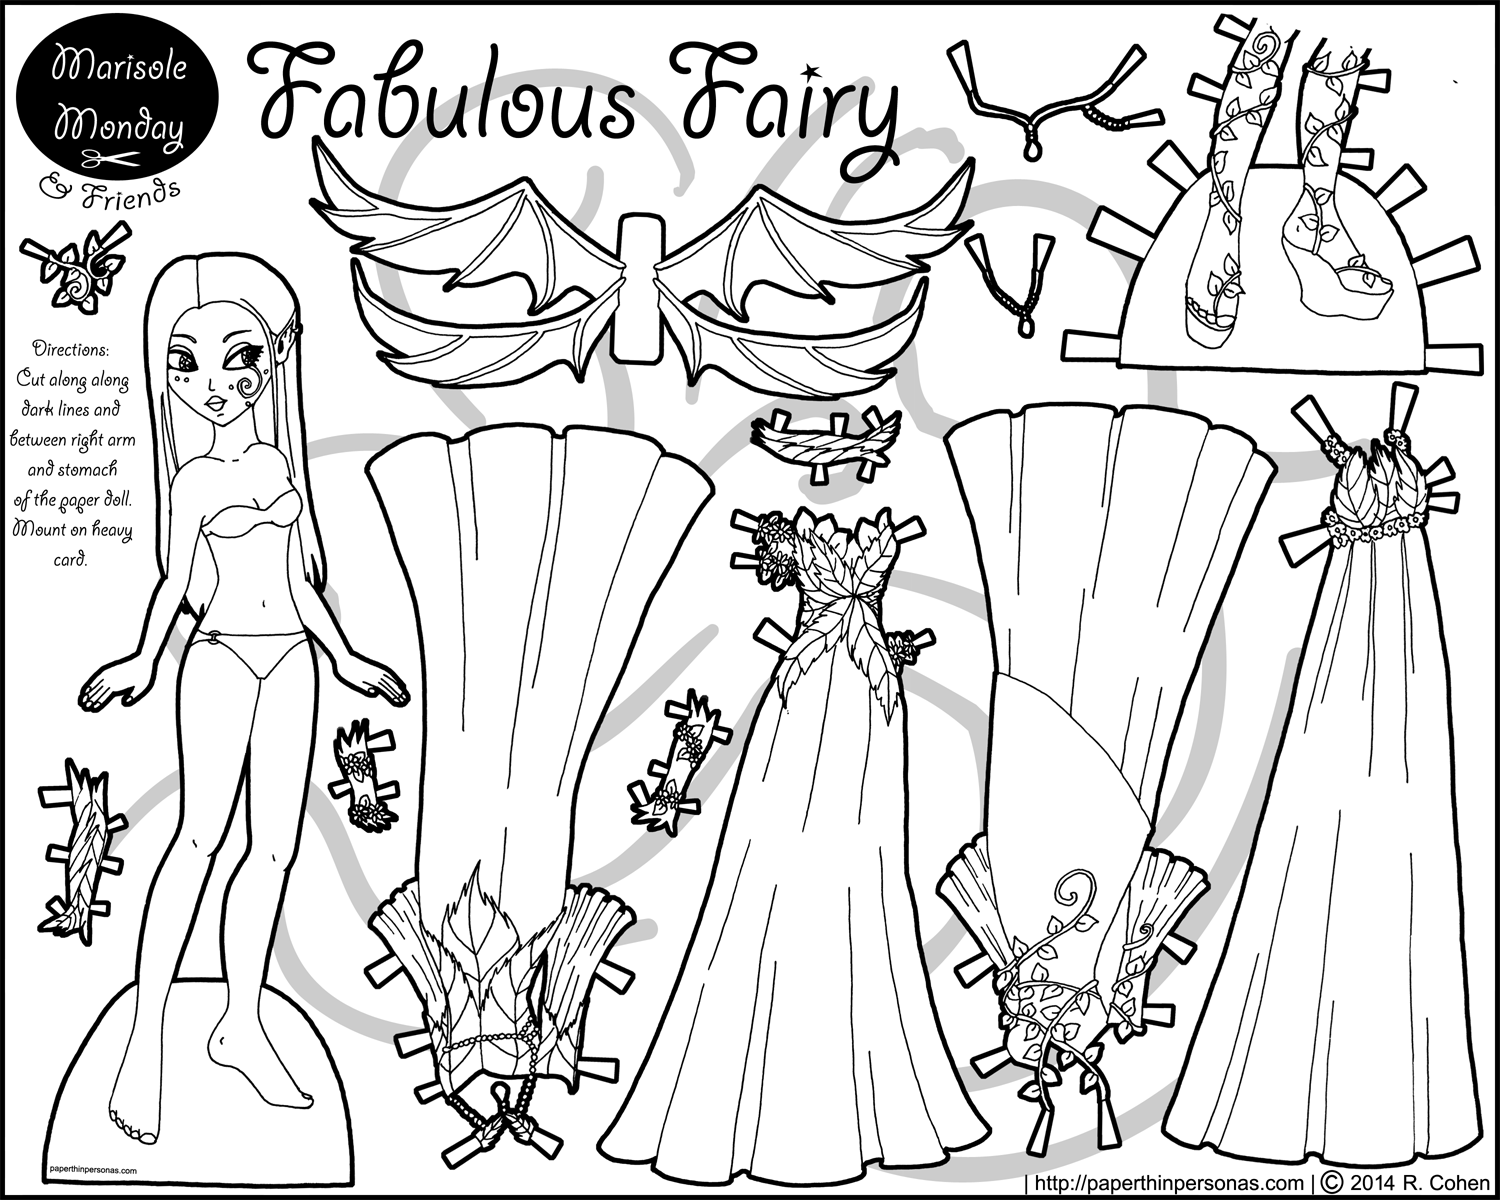 A Fairy Paper Doll Coloring Page With A Doll And Four Dresses. She Also Has